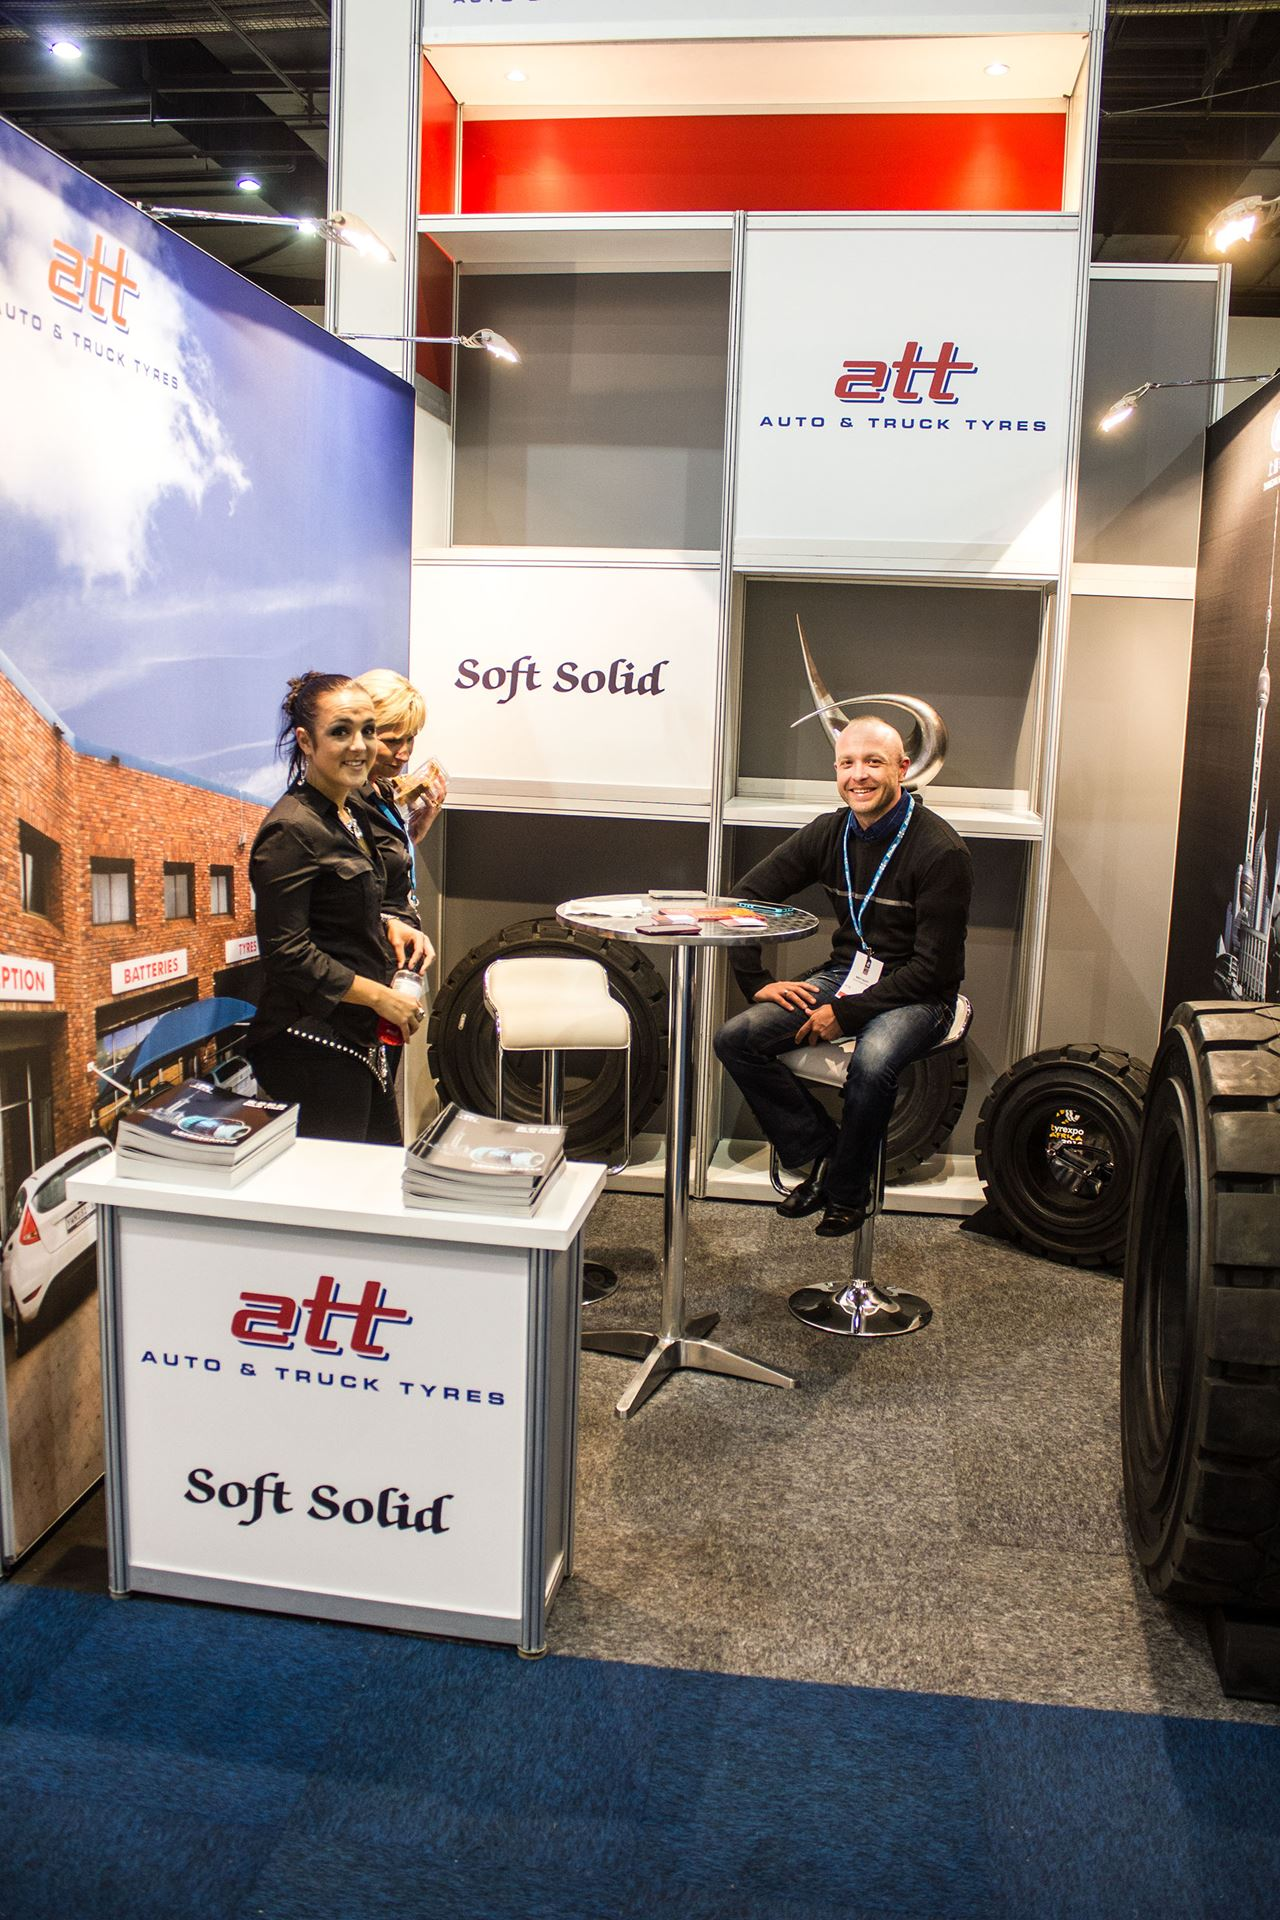 Tyre-Expo-South-Africa-2014-Auto-and-Truck-Tyres